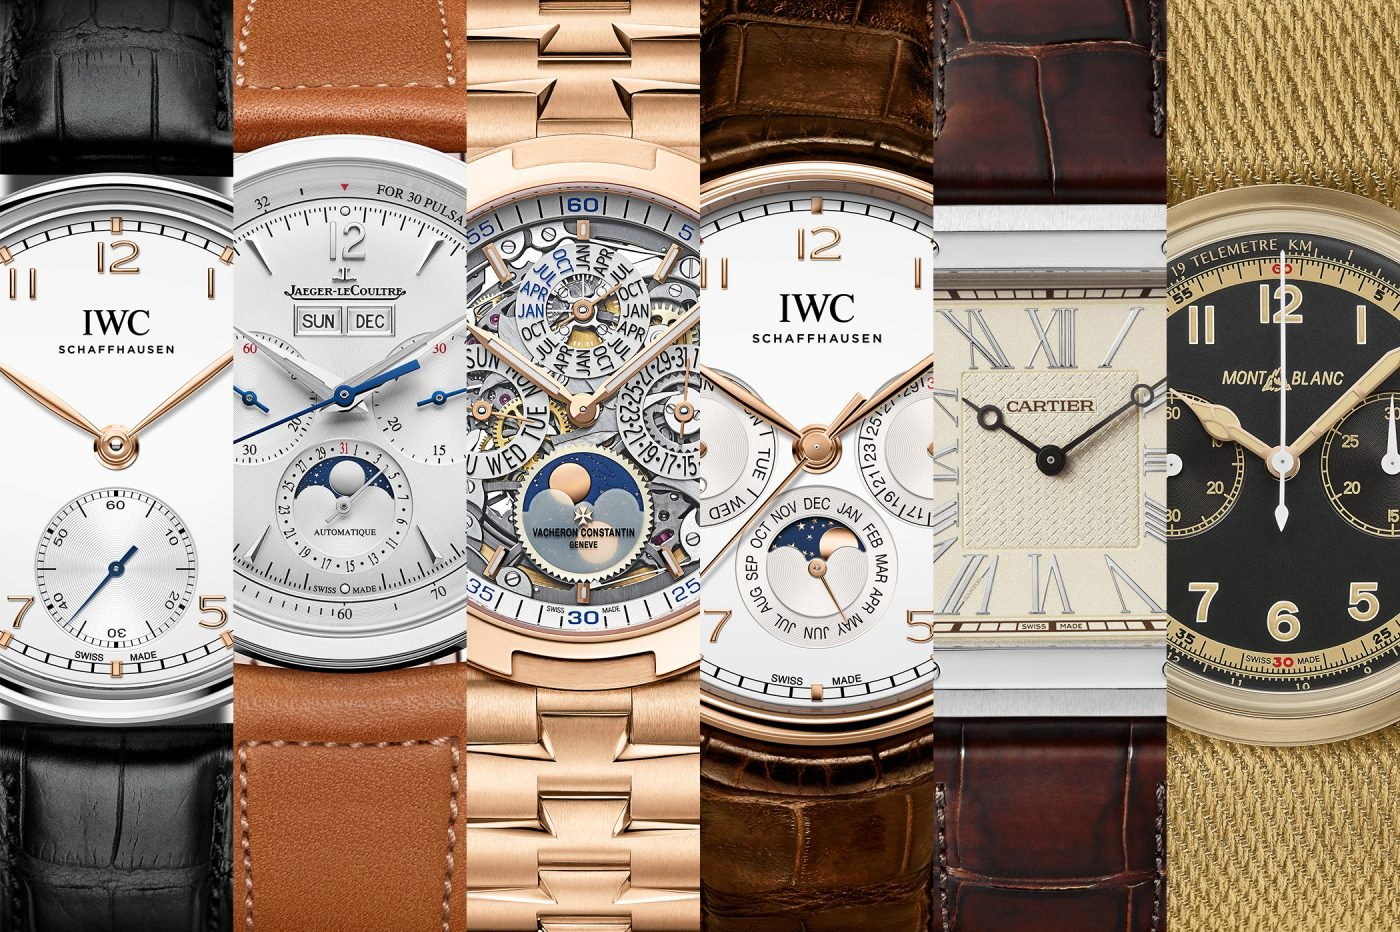 TOP 6 – Watches & Wonders 2020